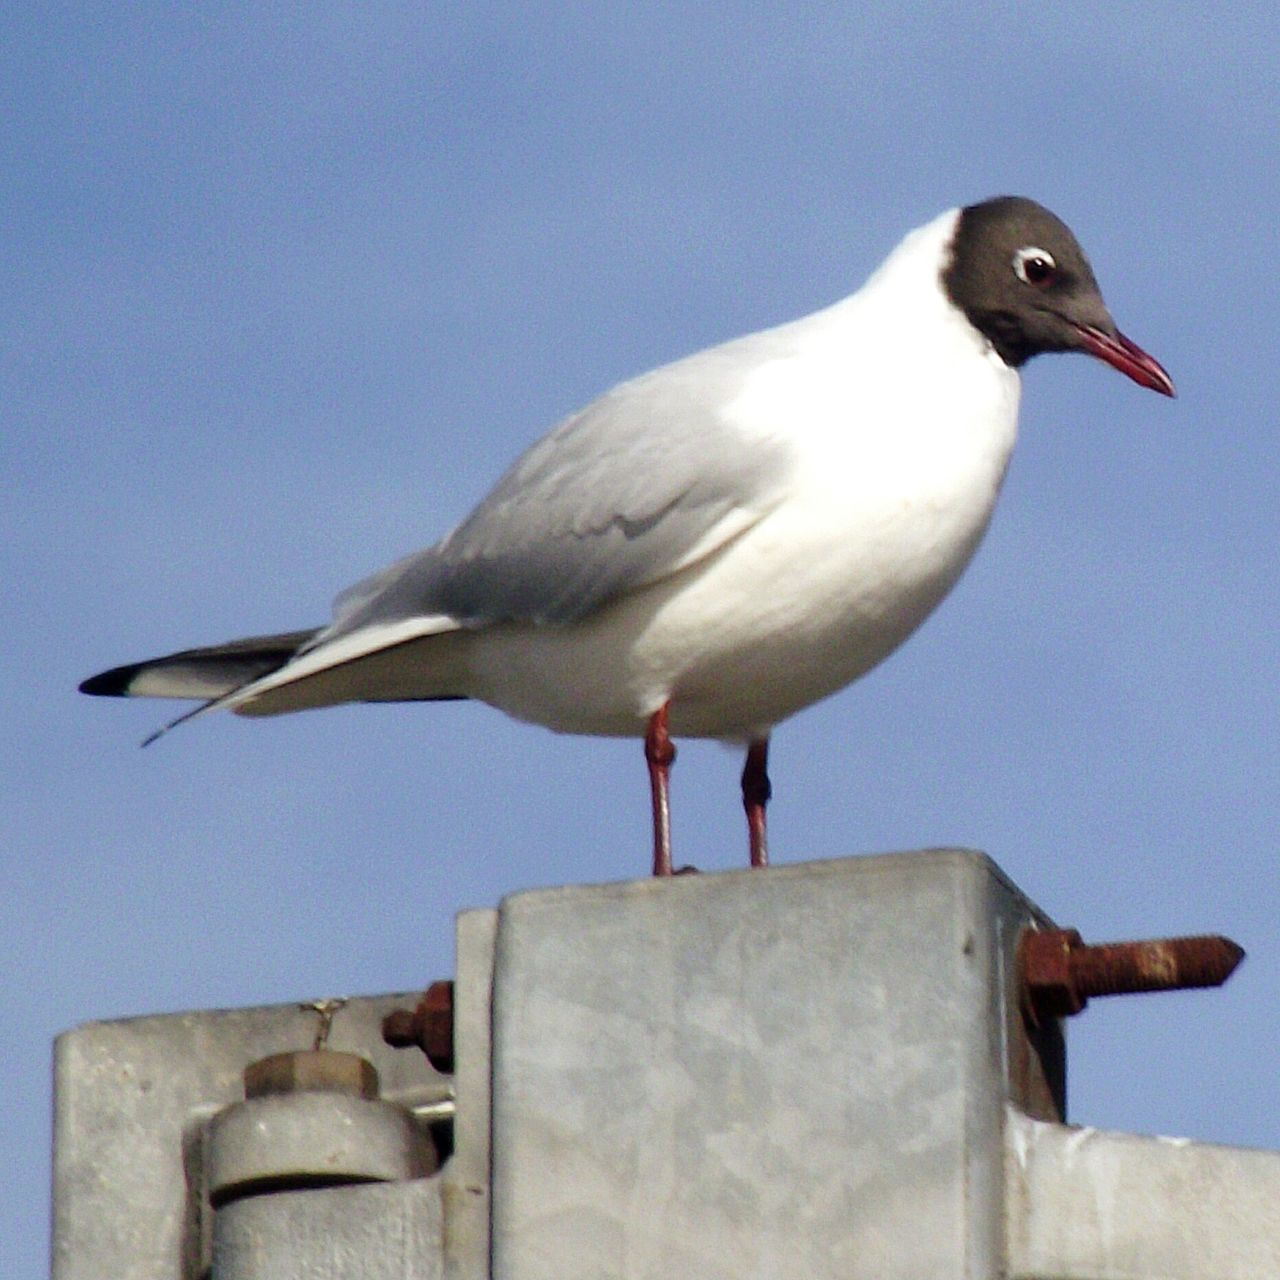 animals in the wild, one animal, bird, animal themes, perching, animal wildlife, no people, day, outdoors, seagull, nature, close-up, sky